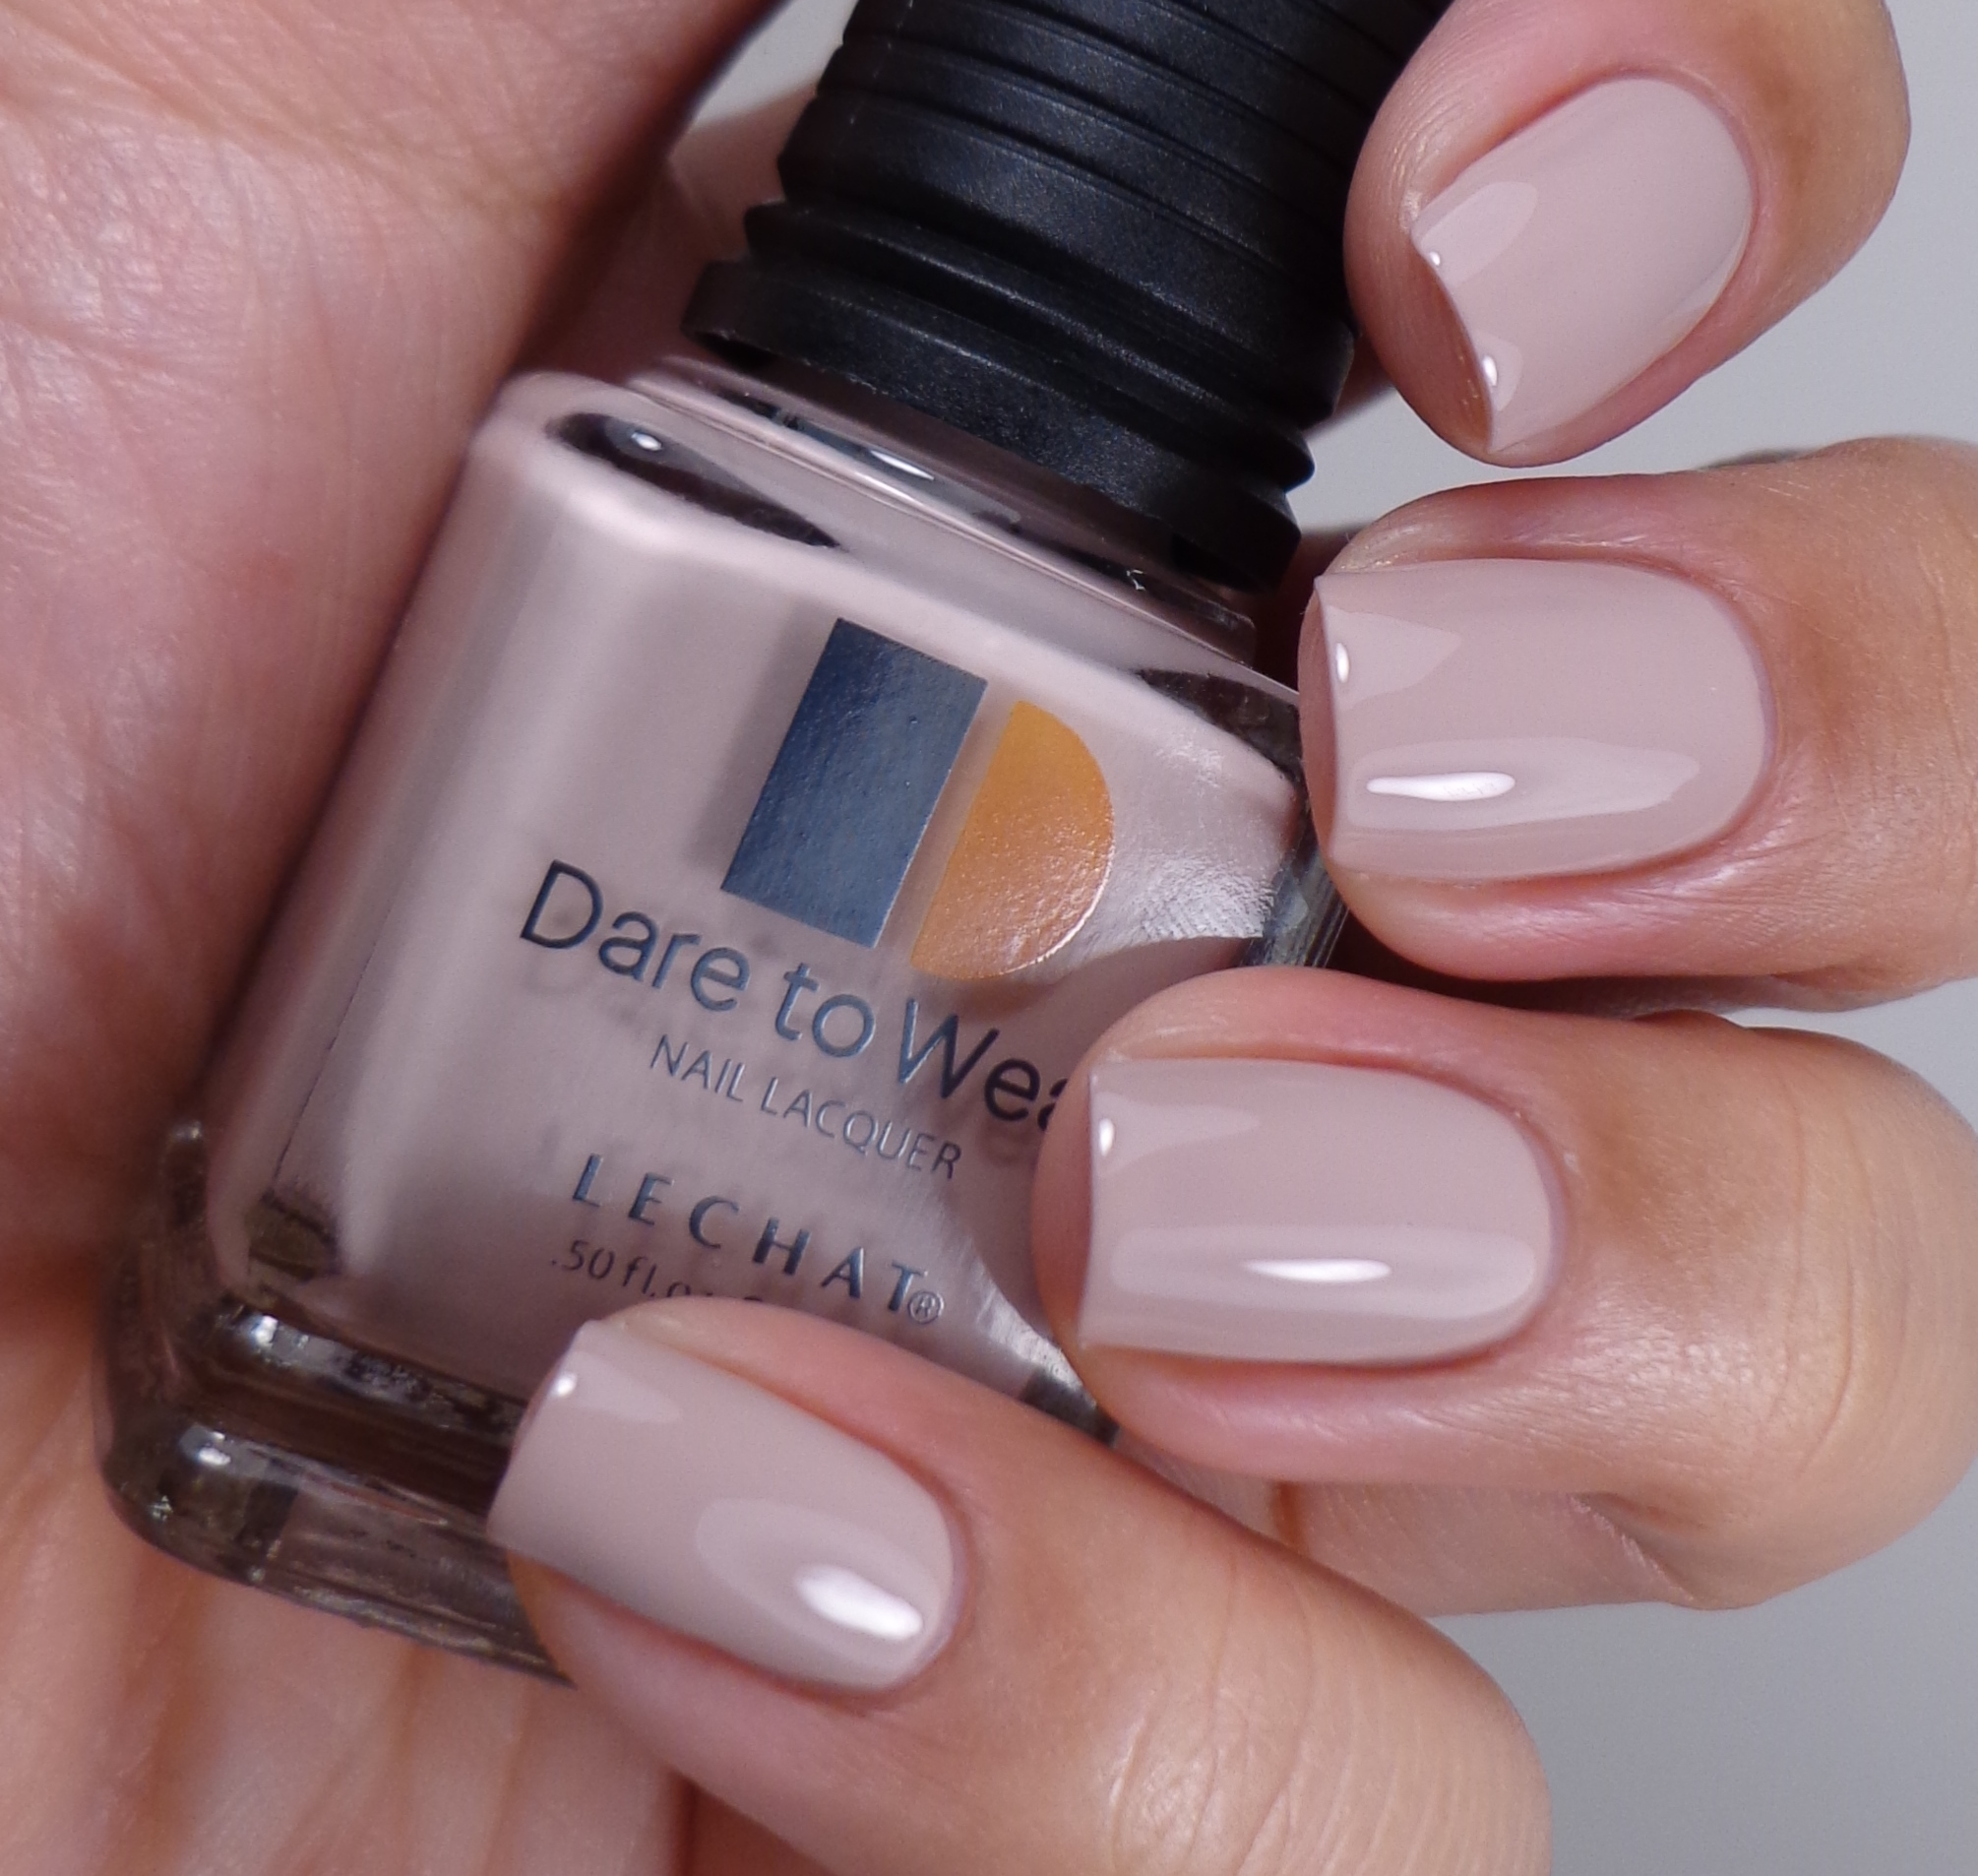 Dare To Wear Archives - Of Life and Lacquer